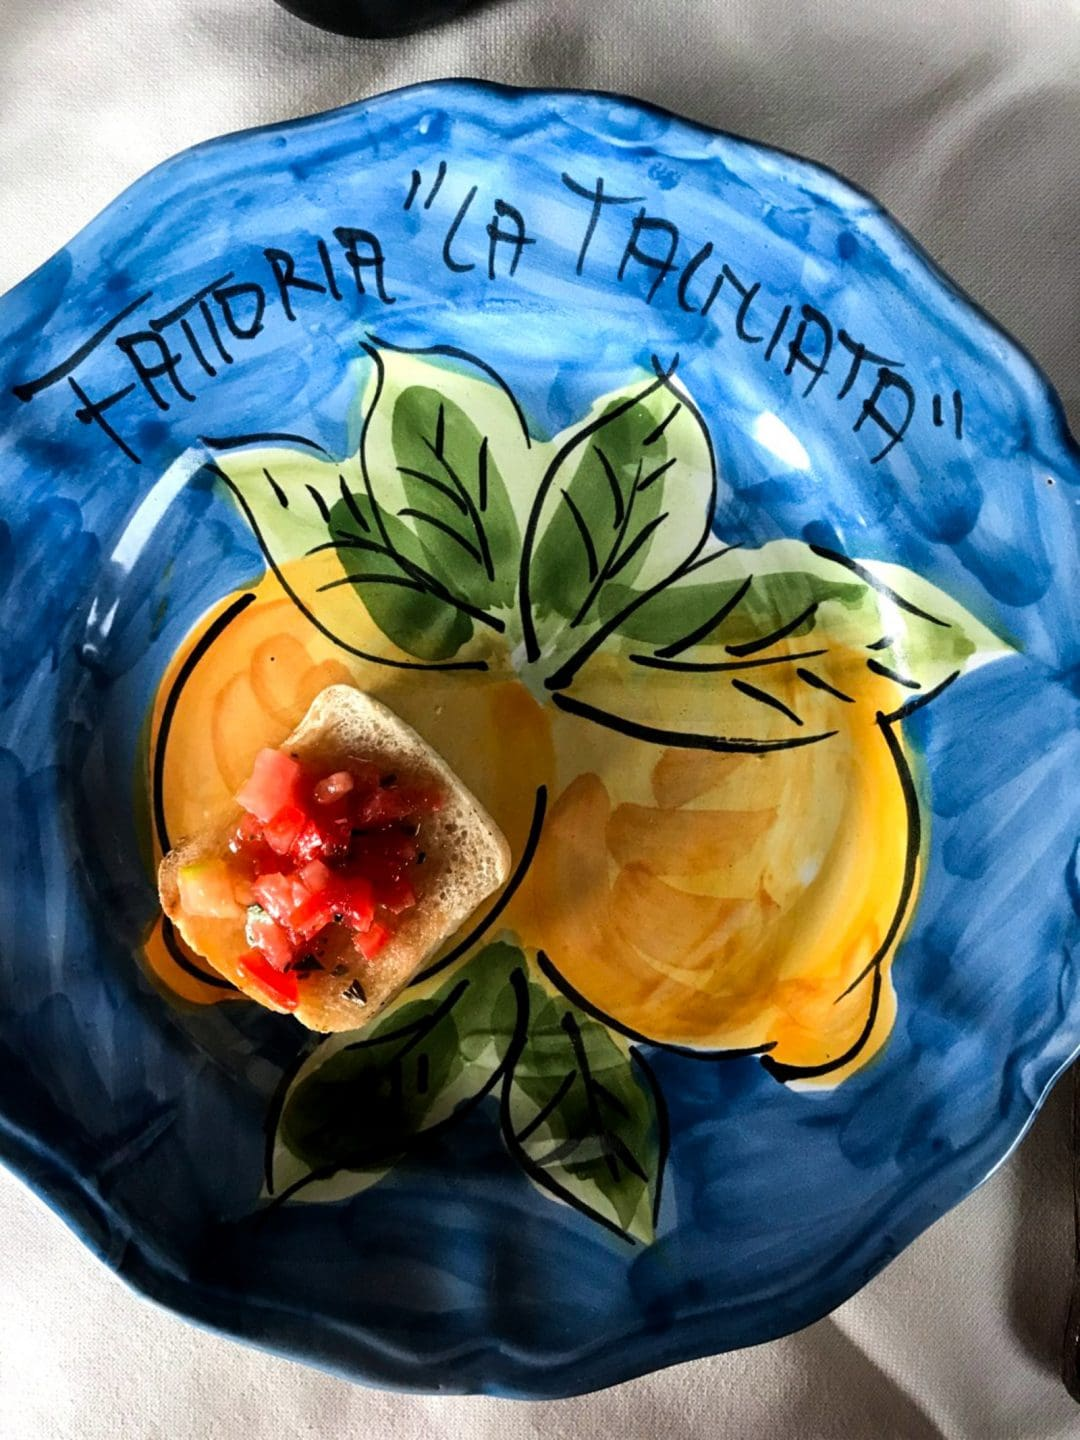 A painted plate sohowcasing lemons.